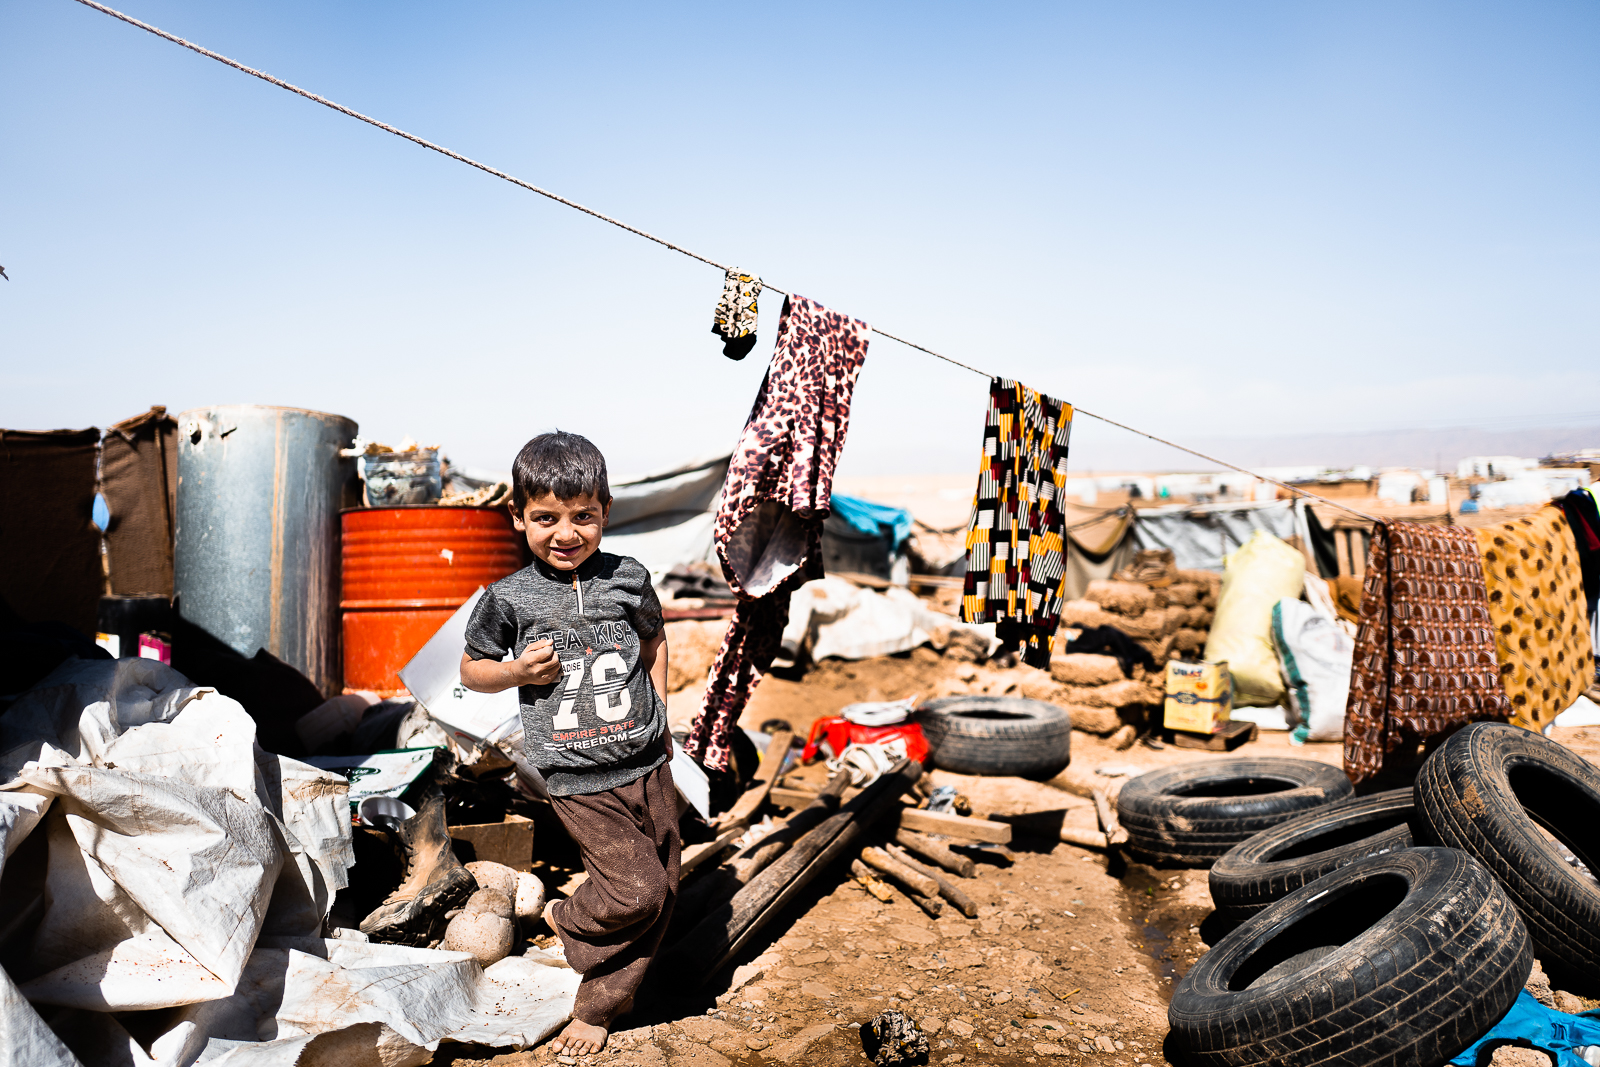 A child in the middle of the garbages. Unofficial camp in Sharya, near Dohuk